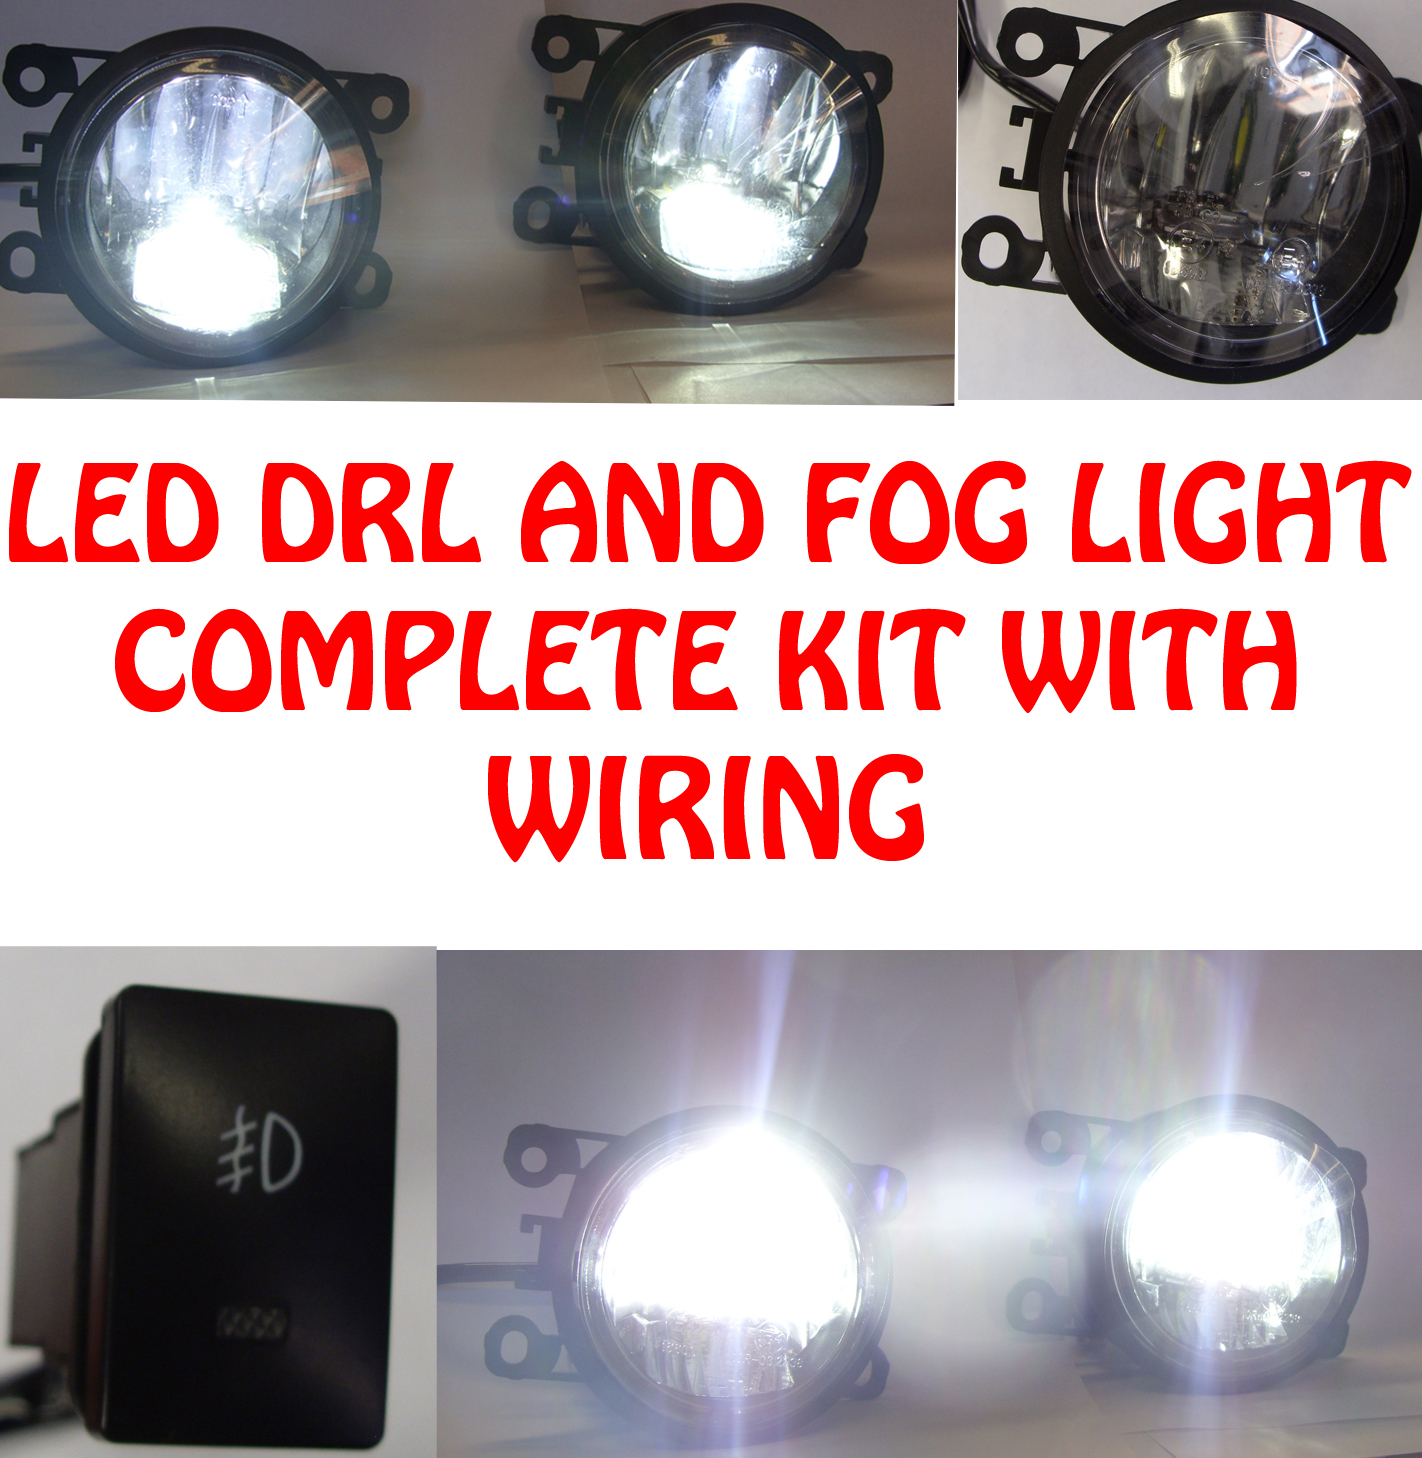 High Power Led Drl And Fog Lights With Wiring Switch For Renault A Sentinel Megane 02